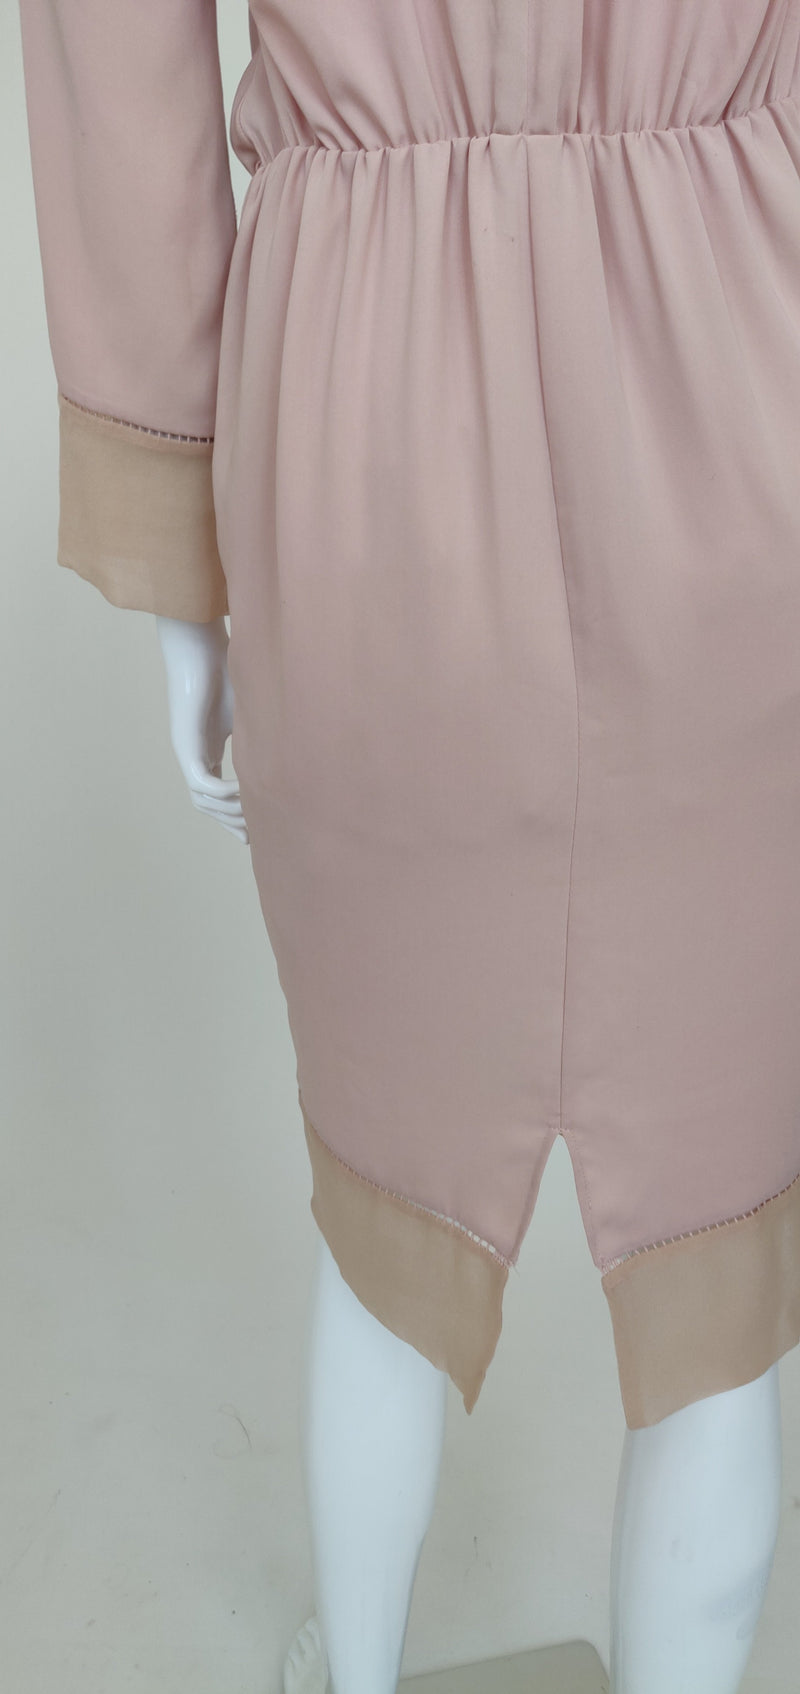 Zimmermann's Pink Midi Dress with Long Sleeves (Medium)